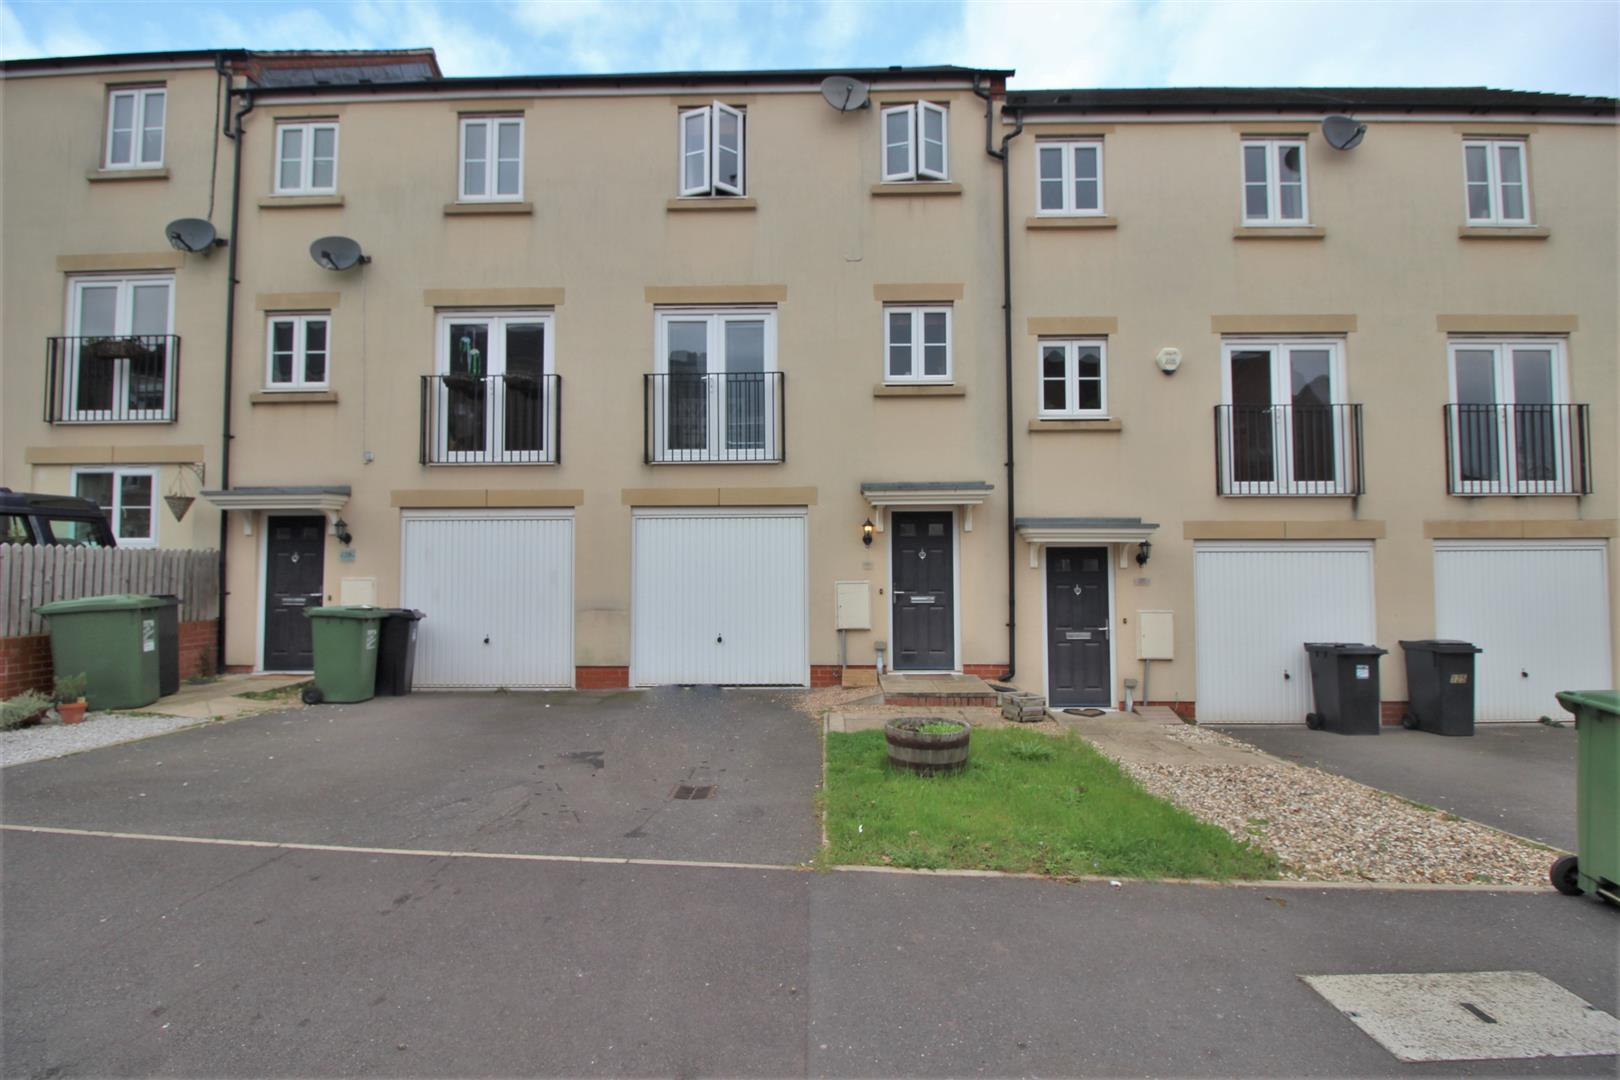 3 Bedrooms Terraced House for sale in Dixon Close, Redditch